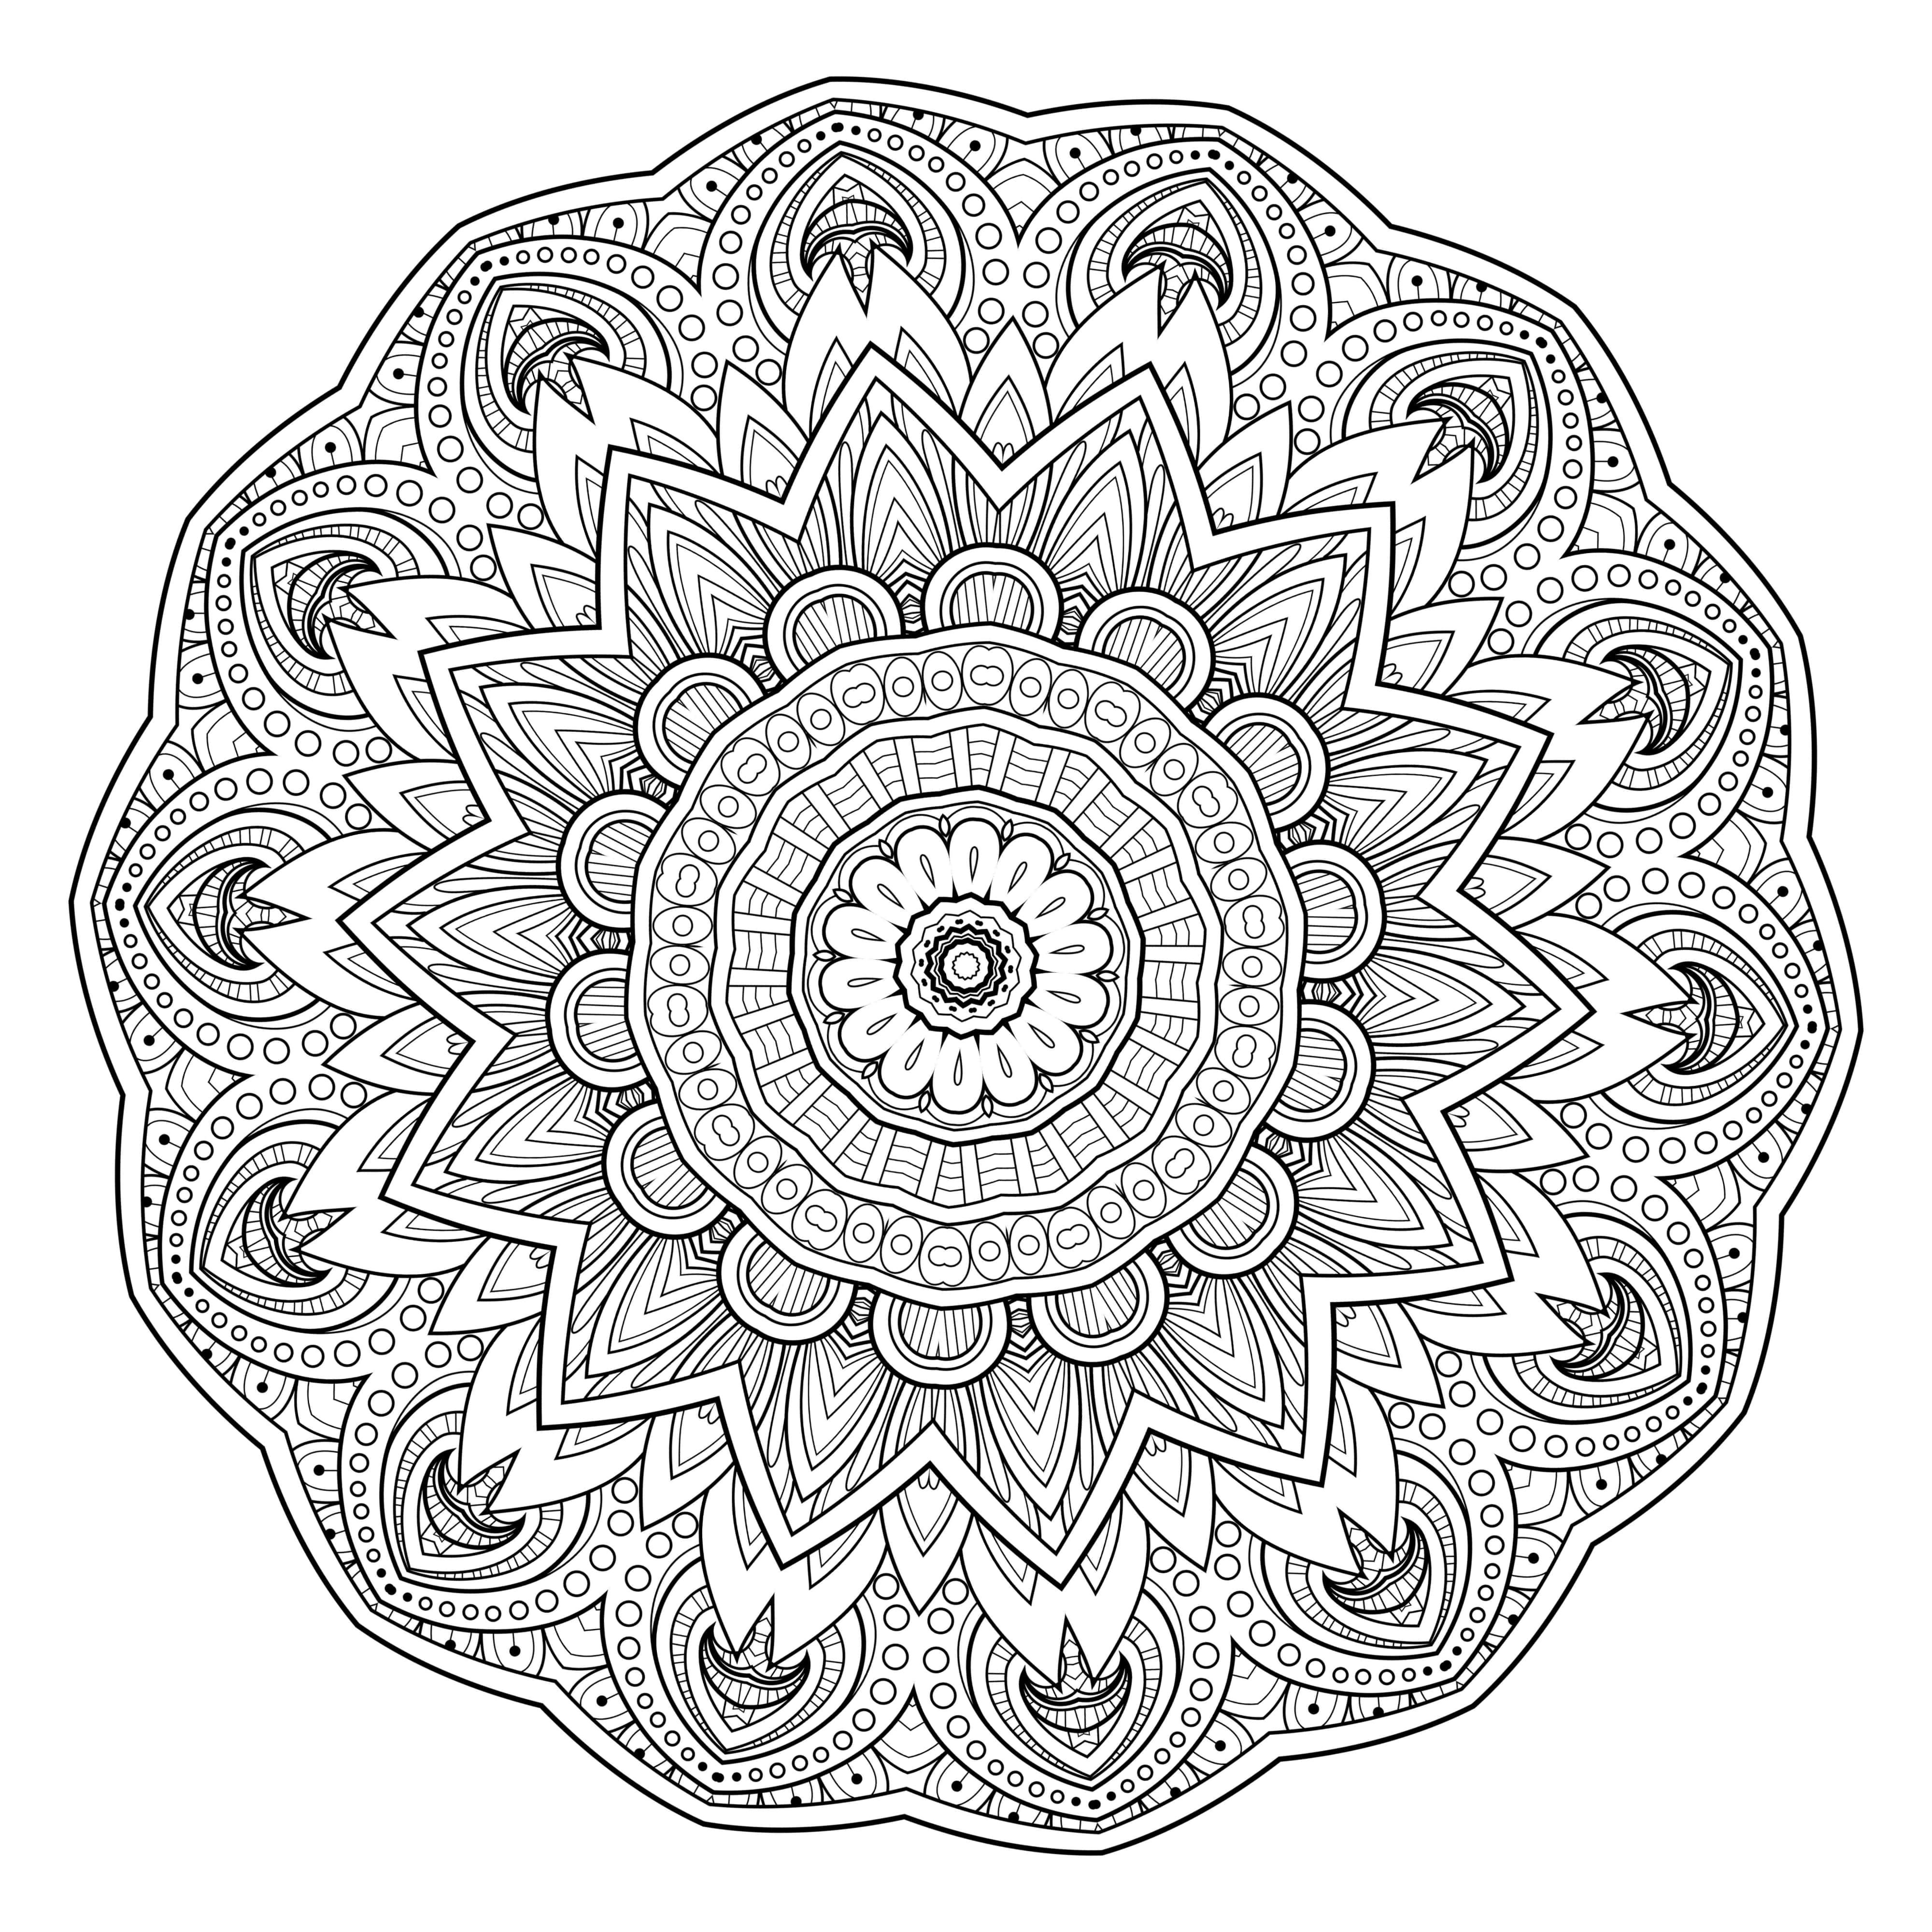 5 Free Printable Coloring Pages: Mandala Templates - Free Mandalas To Colour In Printable